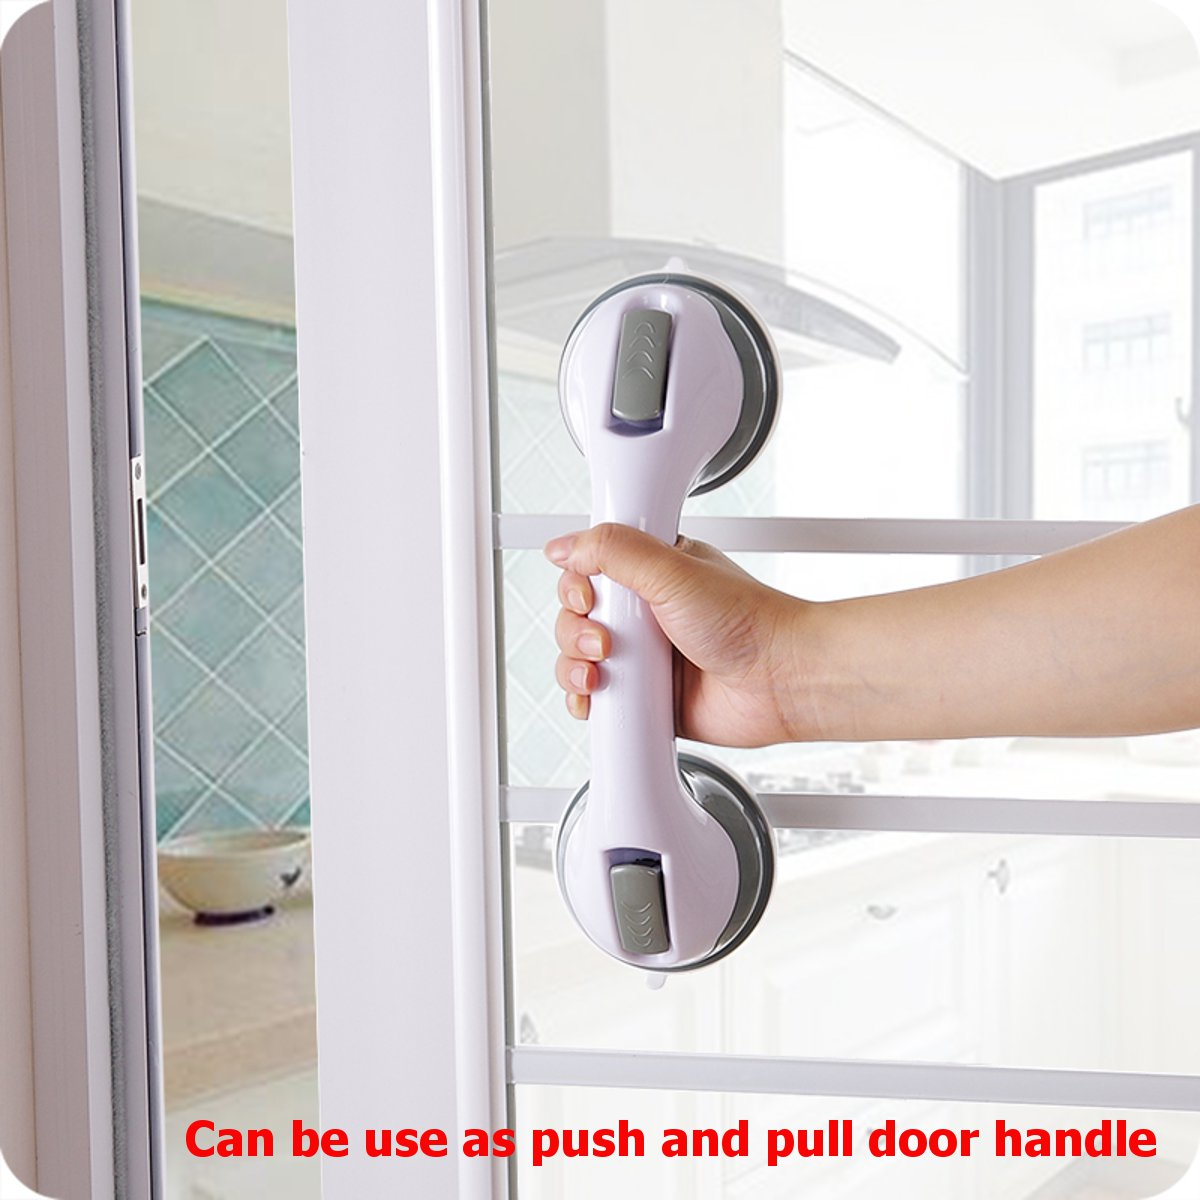 2PCS Bath Bathroom Powerful Strong Suction Grab Bar Grip Handle Handrail Safety Anti-Slip Waterproof Shower Toilet Tub Support for Elderly, Babies, Seniors, Handicapped